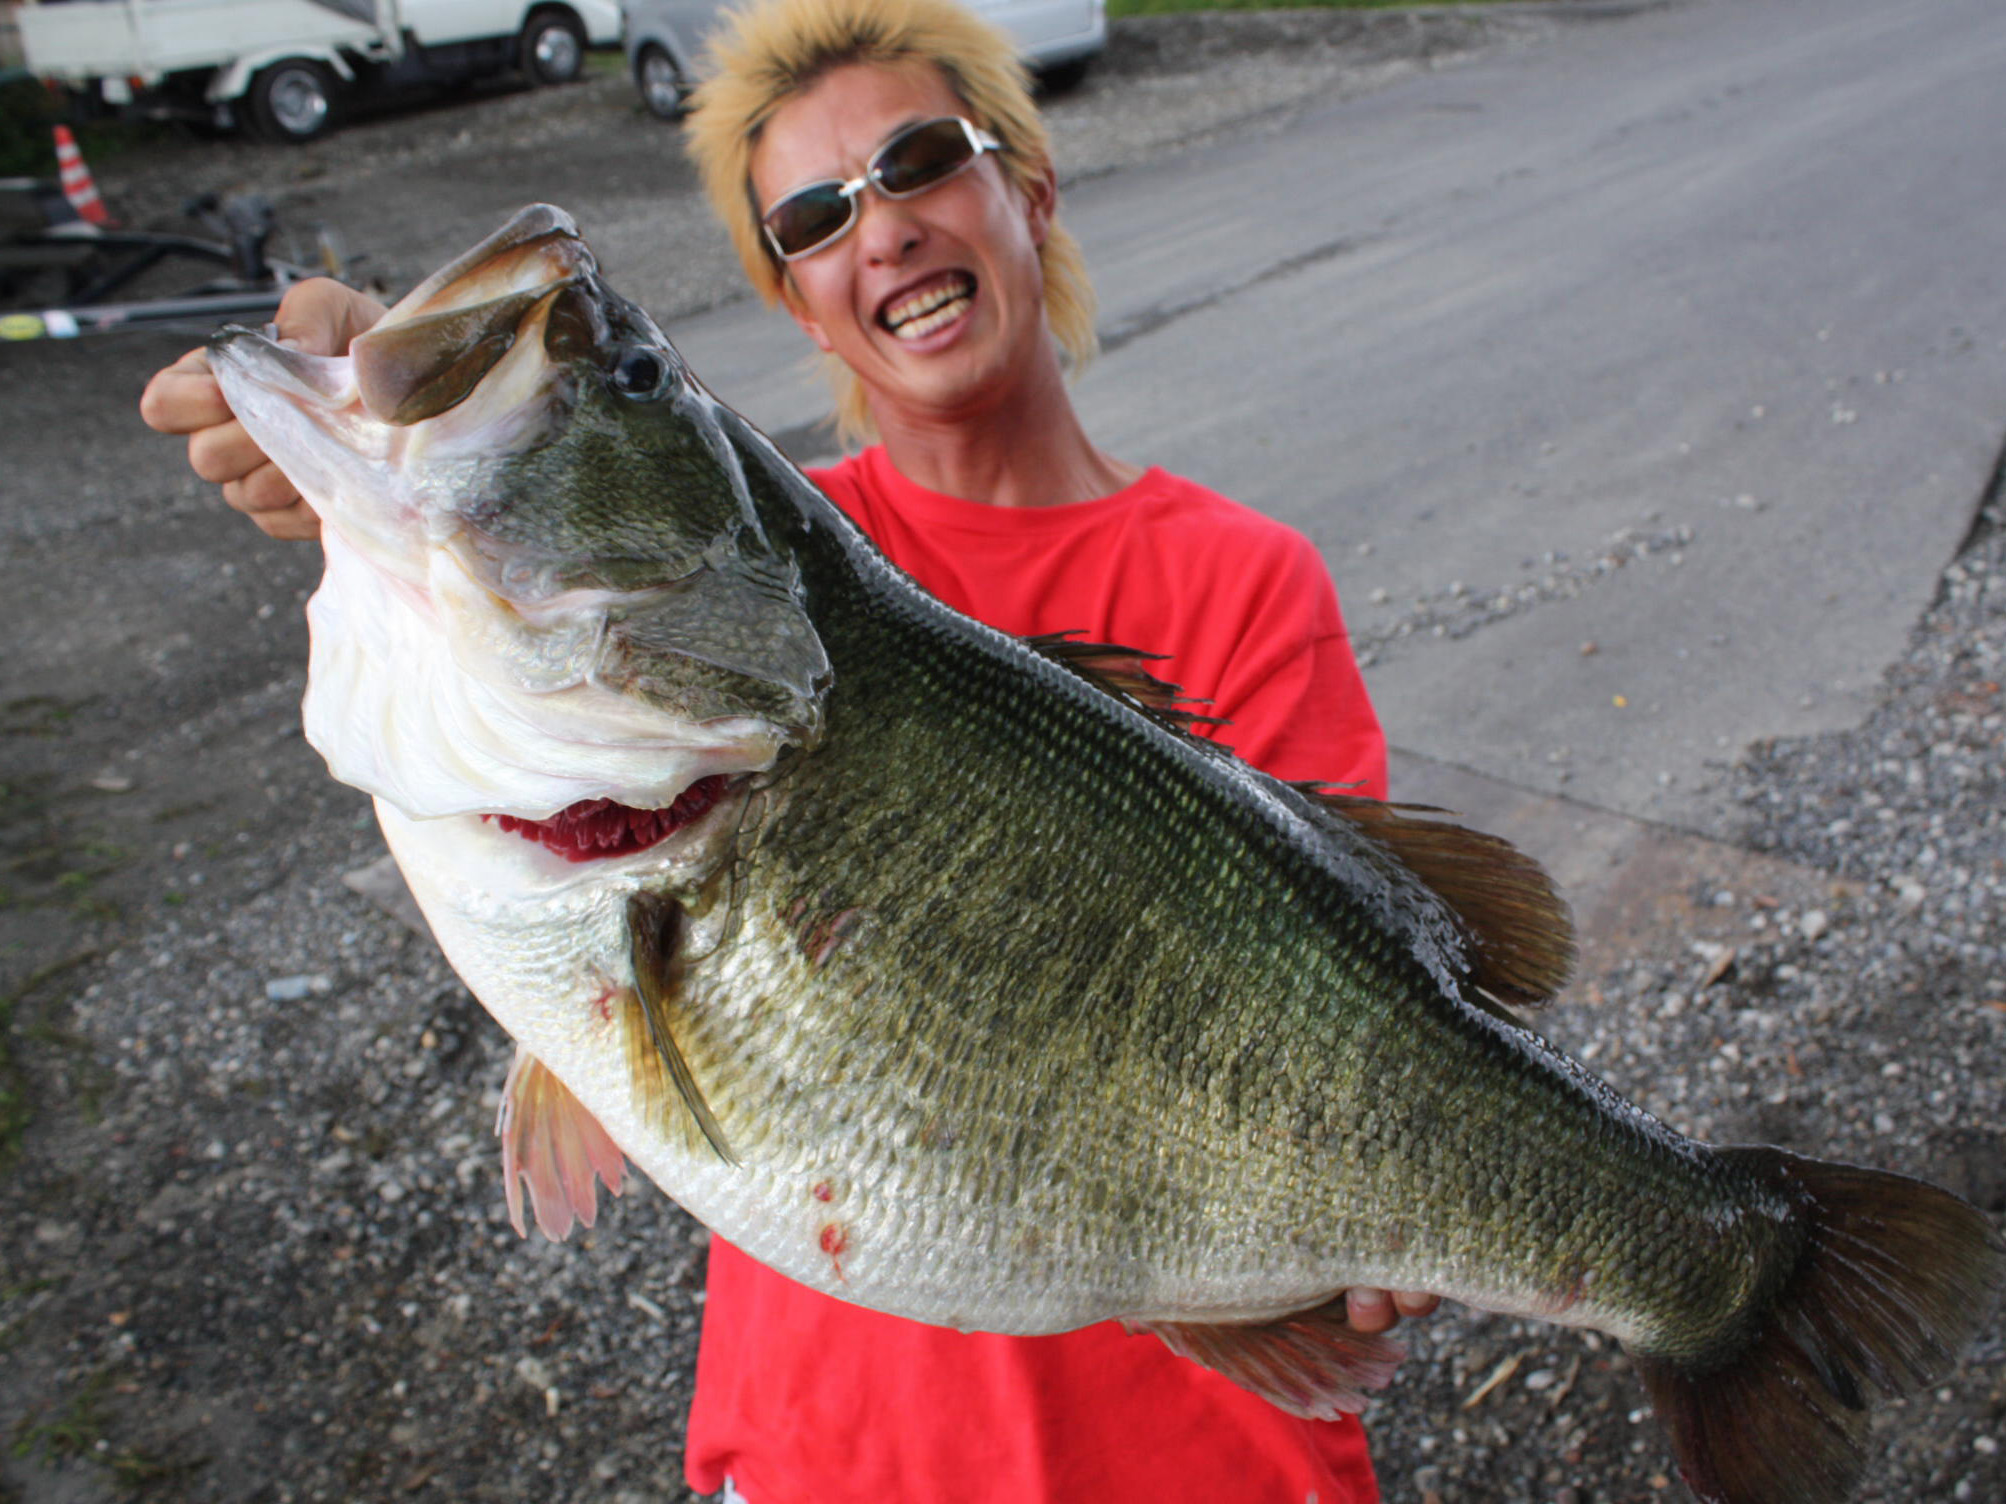 Manabu Kurita shows off the 22.5-pound (10.12-kilo) Largemouth Bass he caught at Lake Biwa in Shiga prefecture in western Japan on July 2, 2009. Kurita, the 33-year-old self-employed worker caught what was a world record equalling bass at the country's la